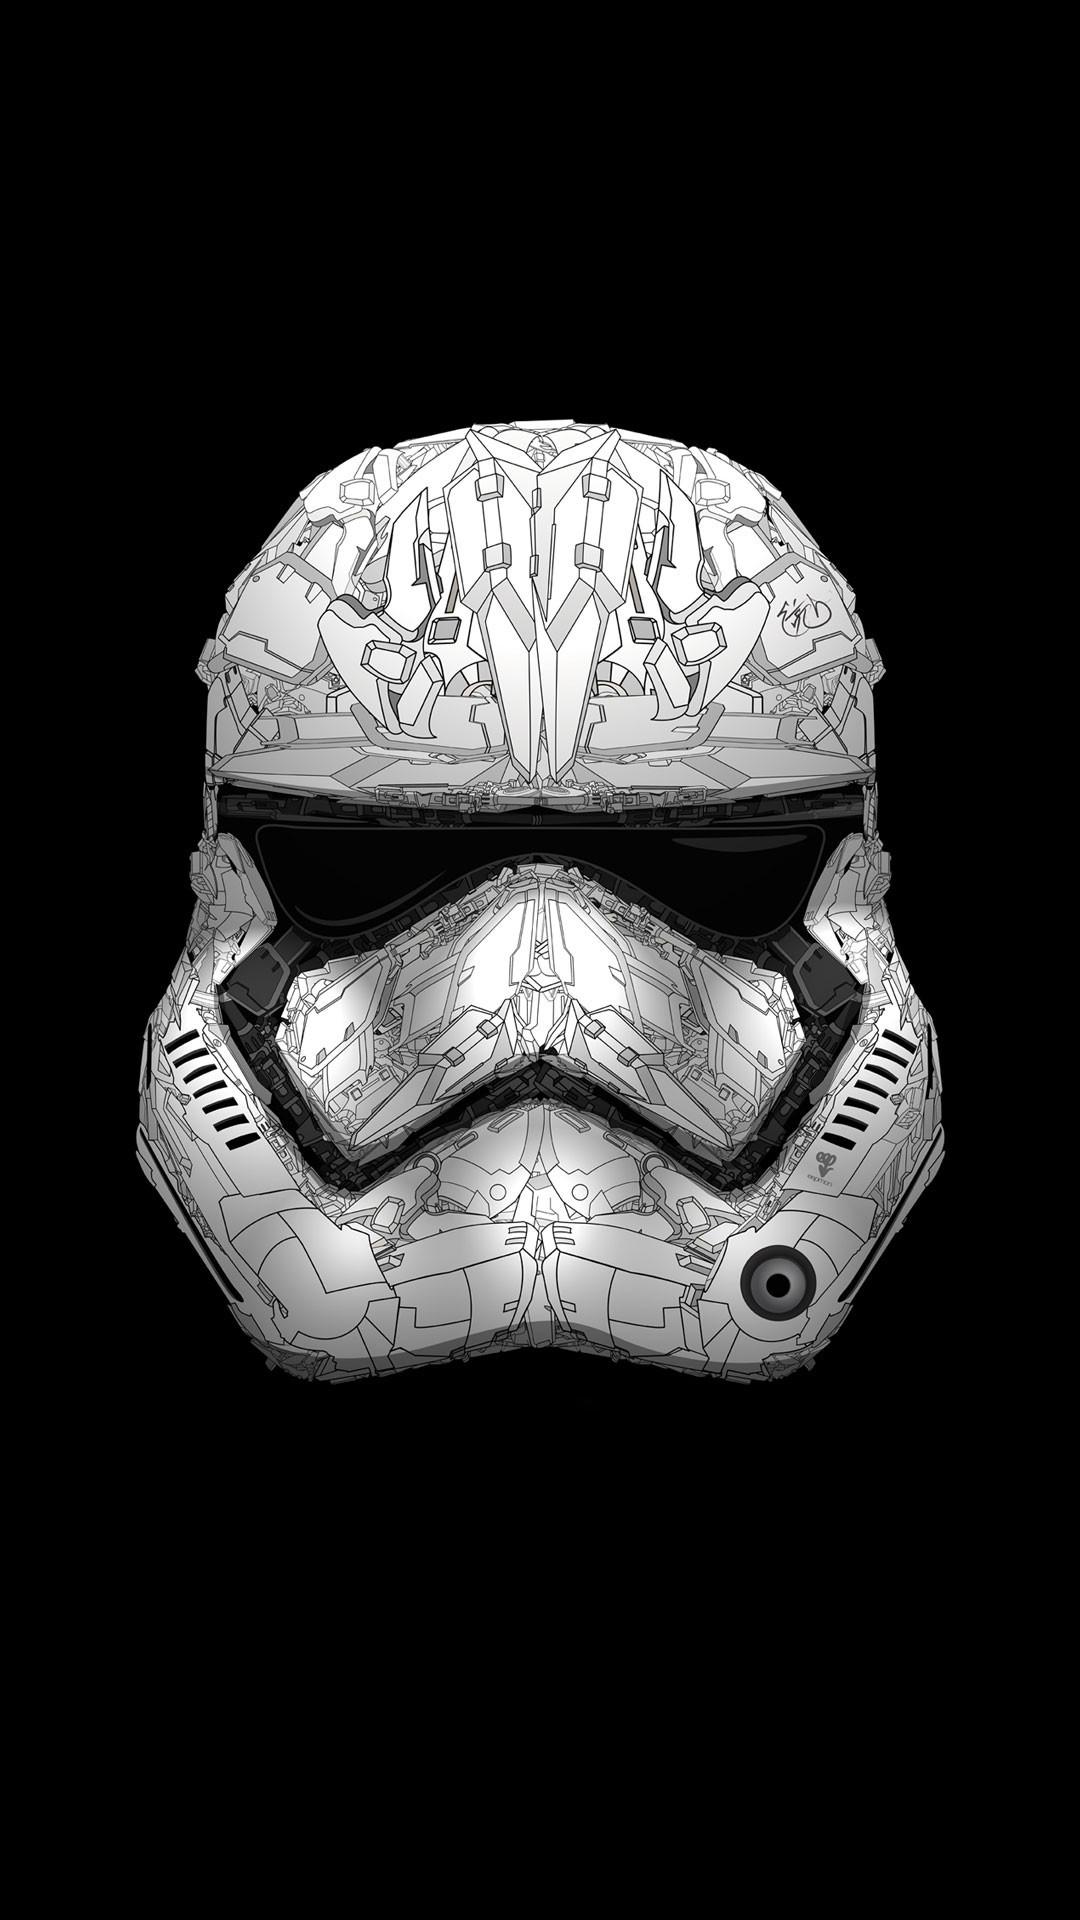 1080x1920 May the force be with you.